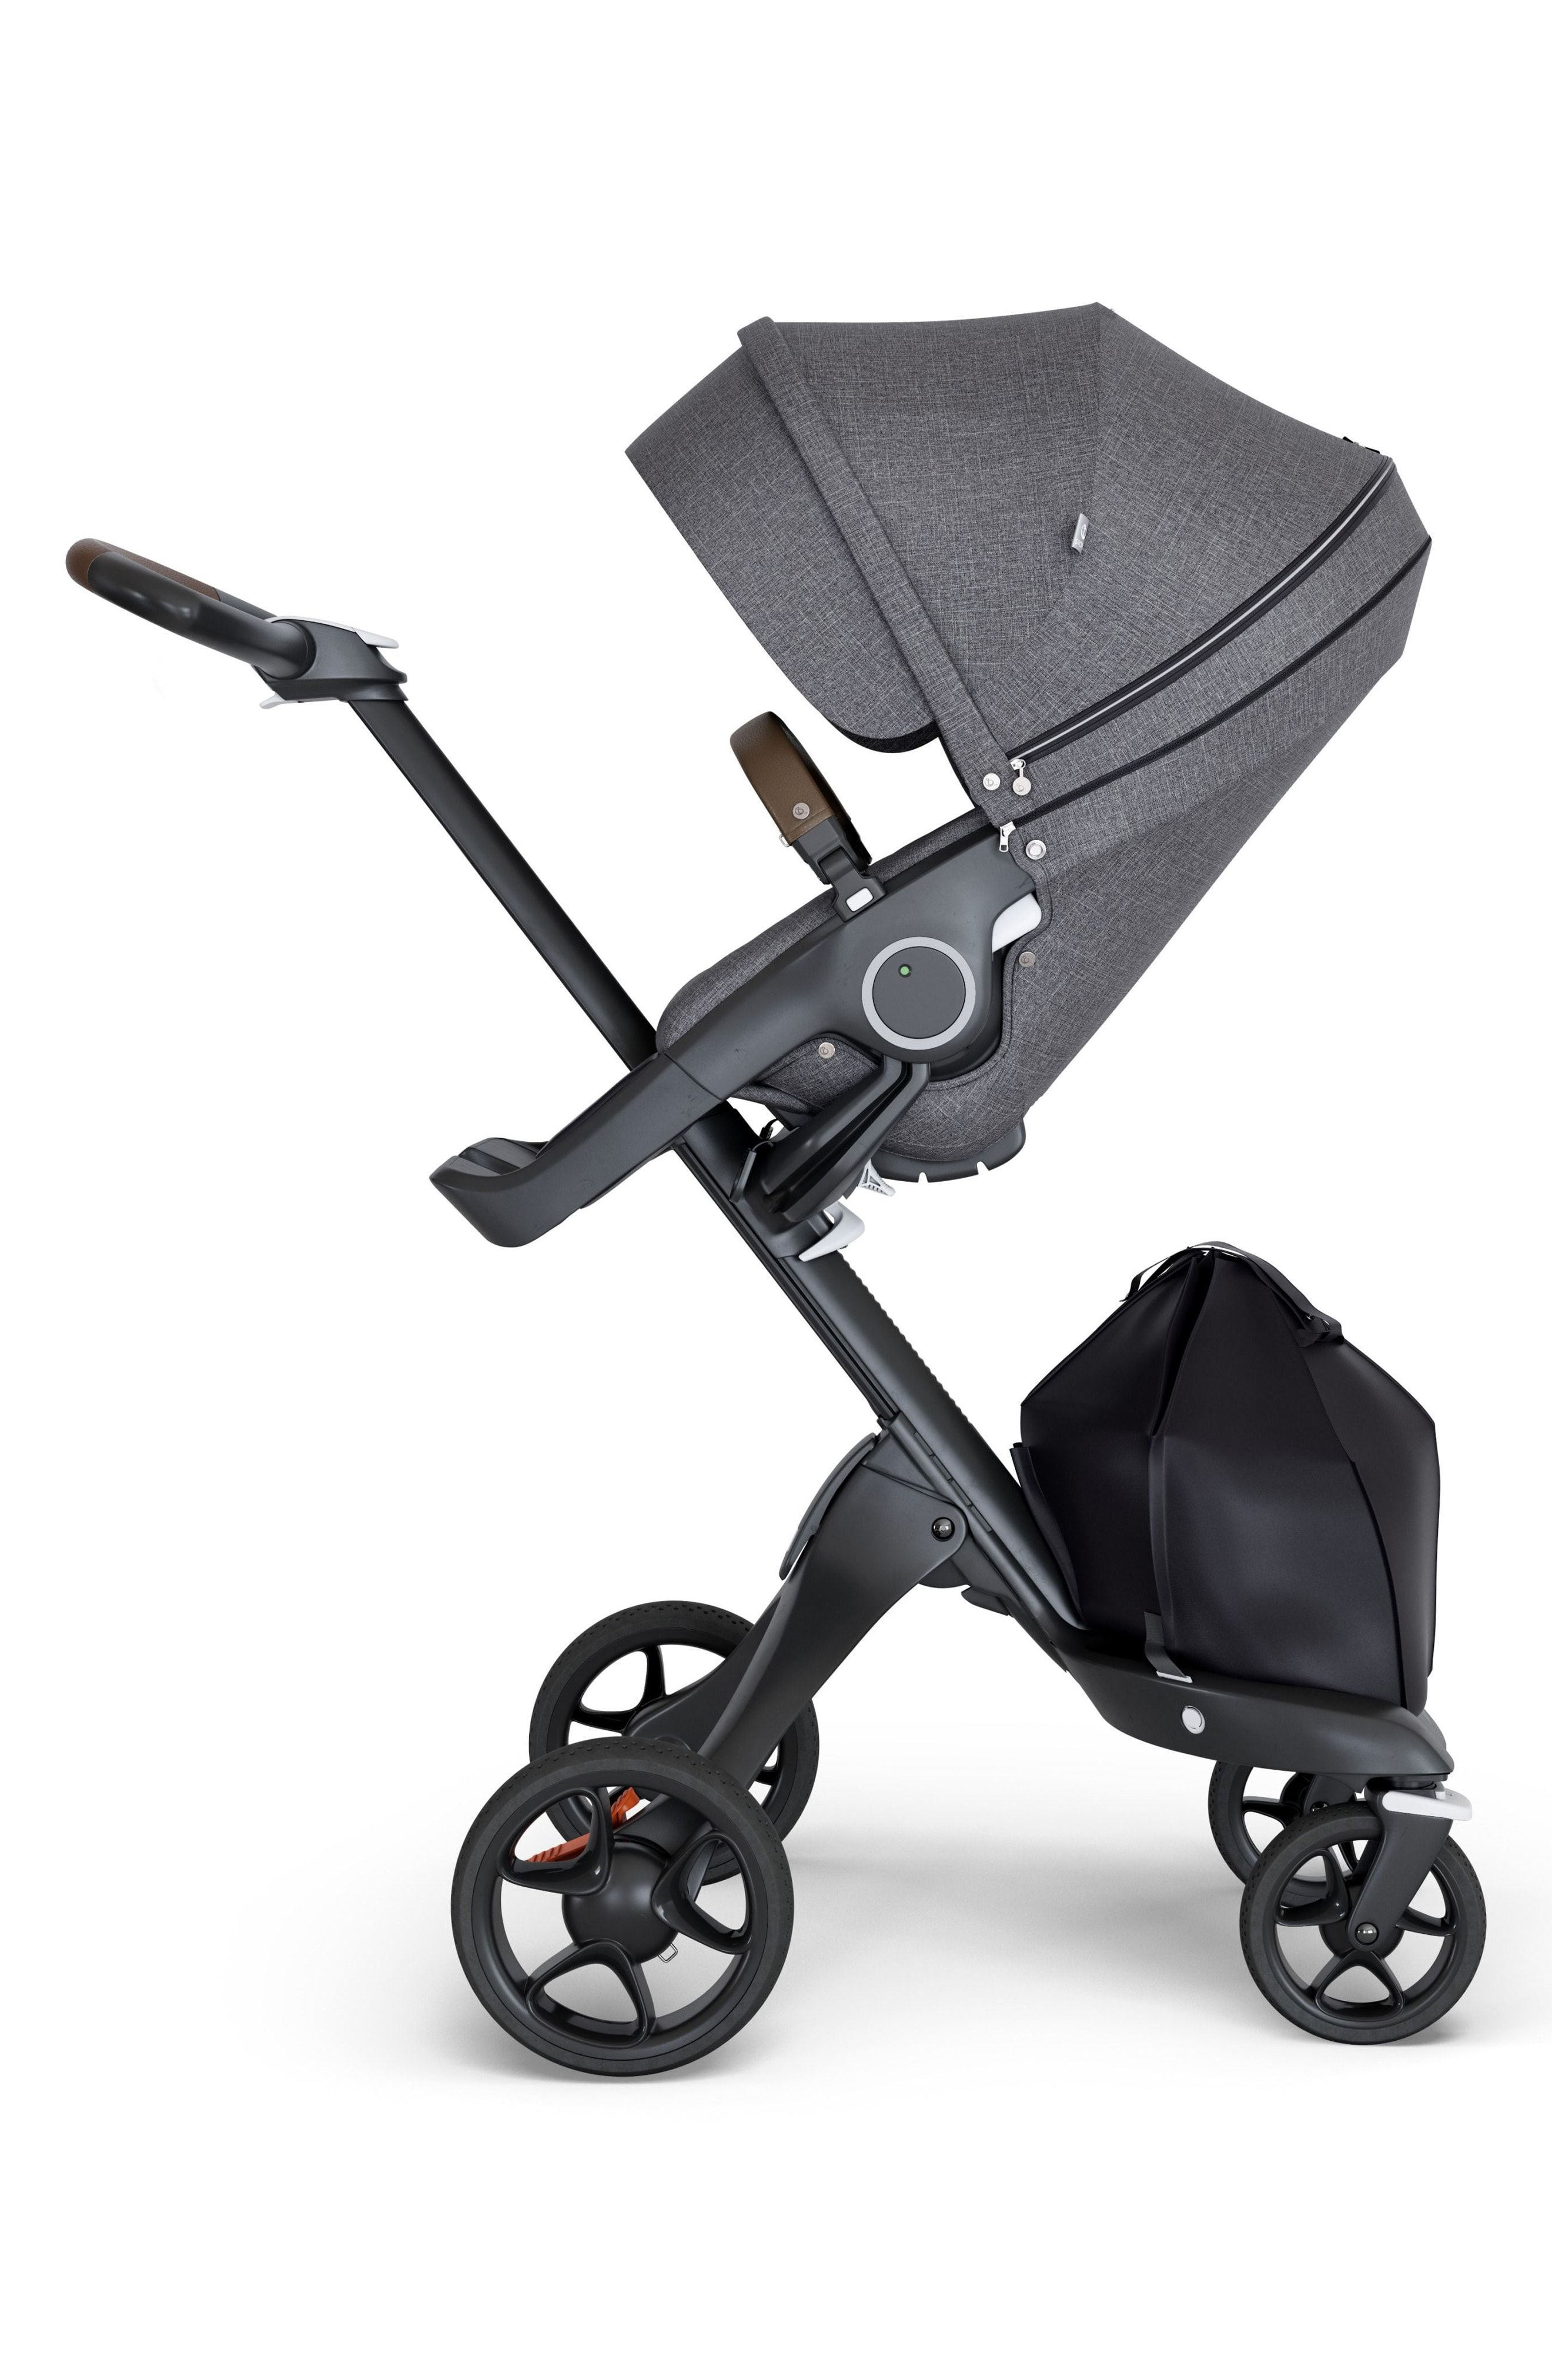 Stokke Xplory® Black Chassis Stroller available at